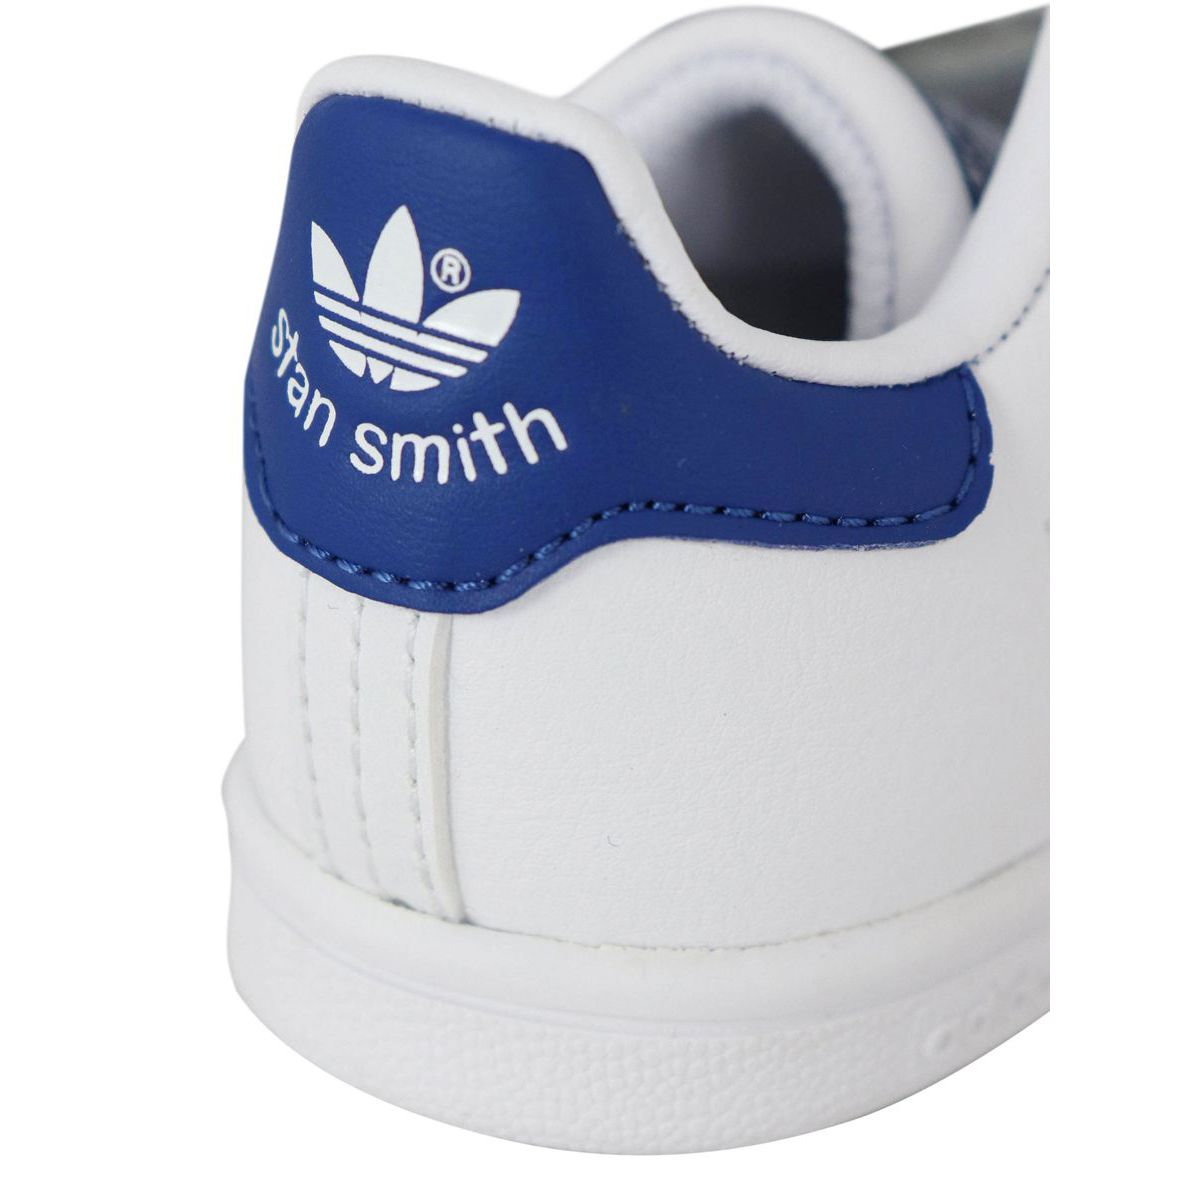 Sneakers S74782 STAN SMITH CF White / blue Adidas